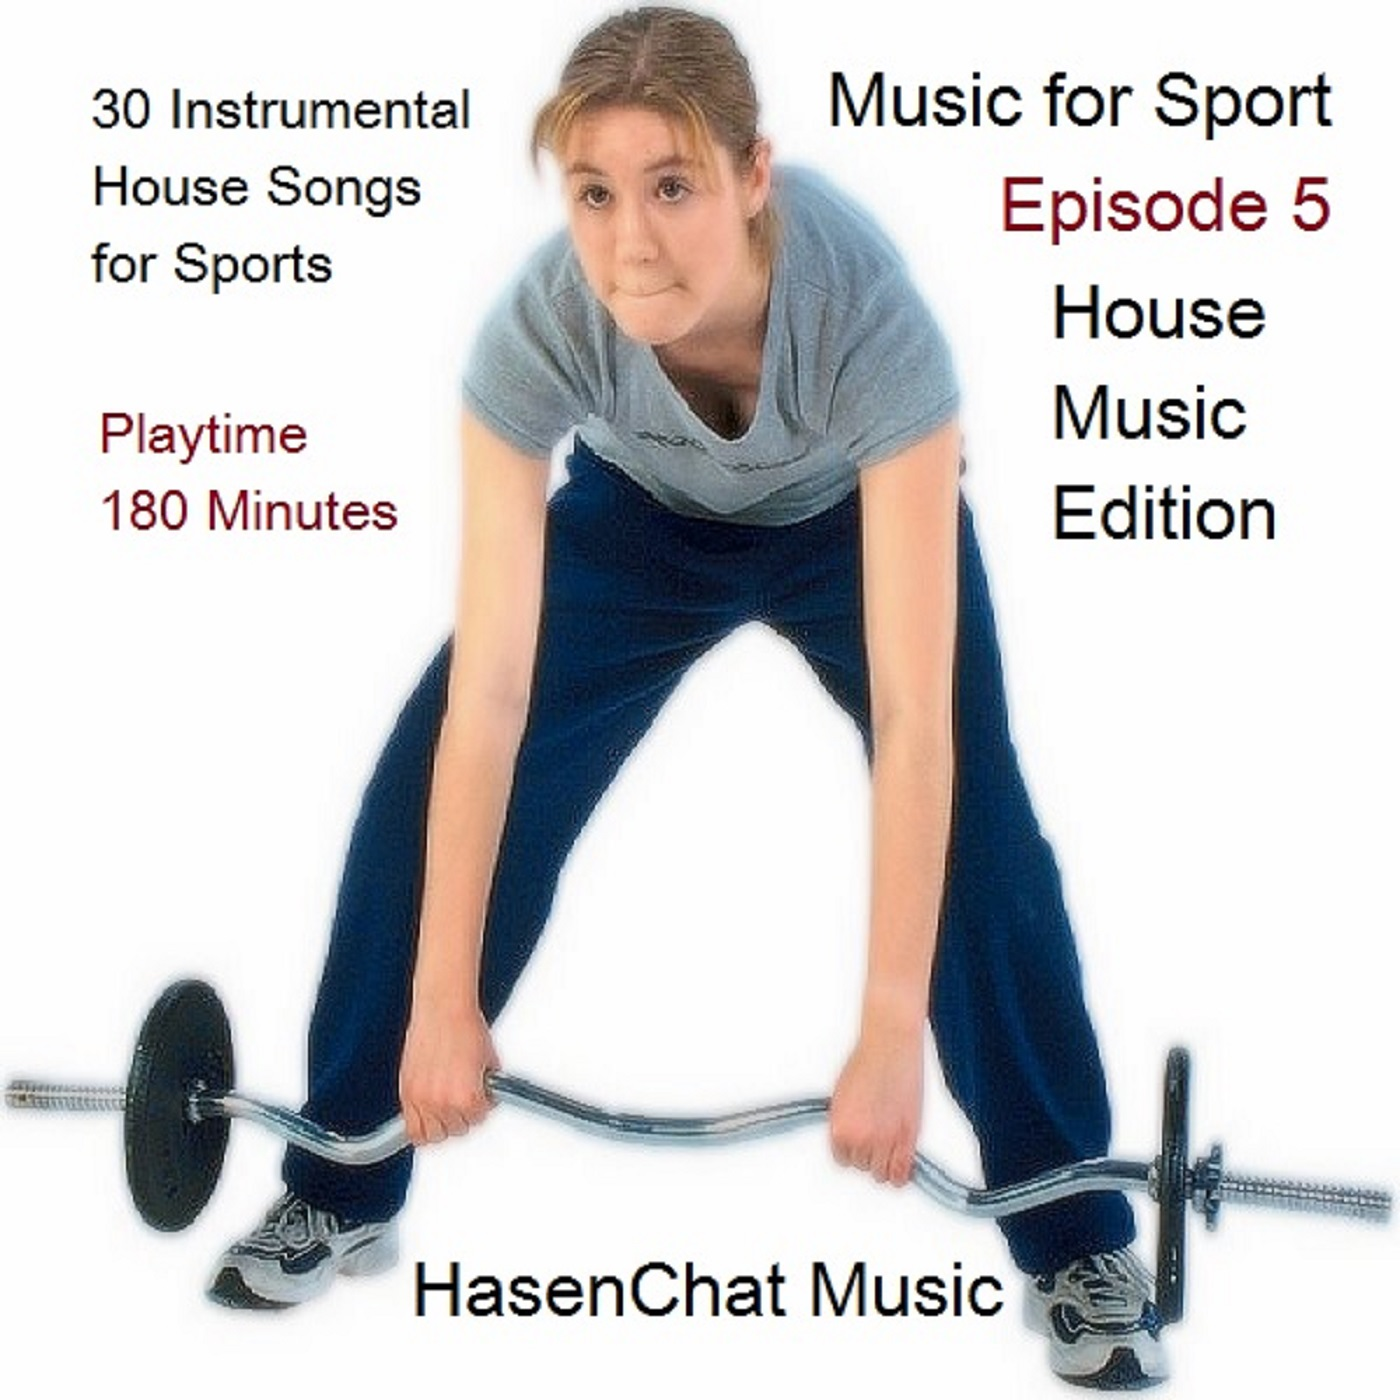 HasenChat Music - Music for Sport - Episode 5